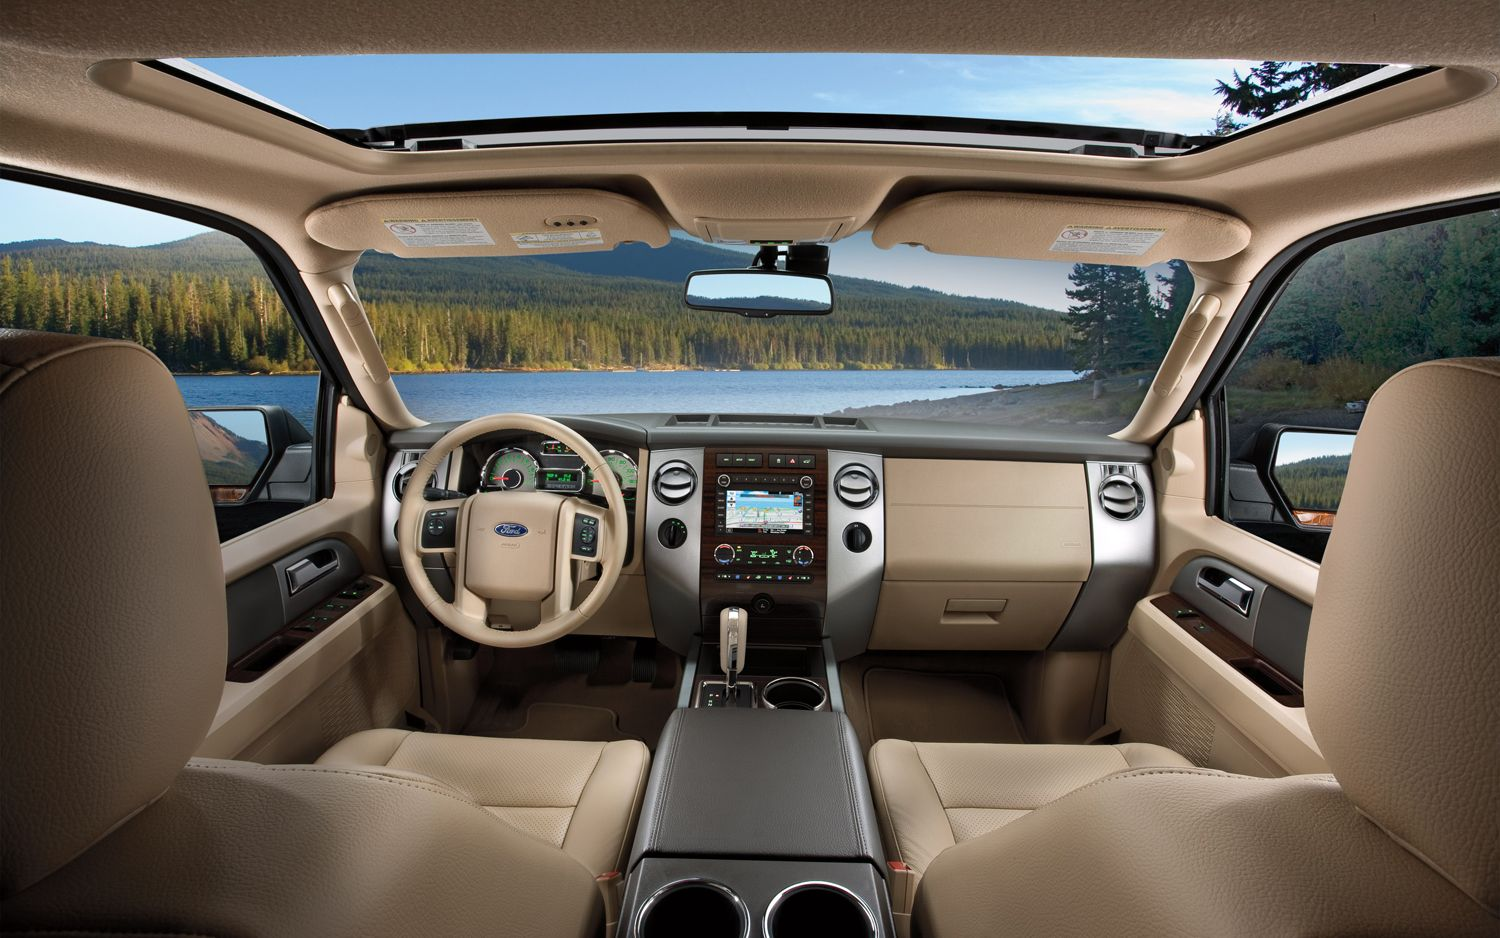 Awesome 2014 Ford Expedition 2014 Ford Expedition Interior U2013 TopIsMagazine Awesome Ideas